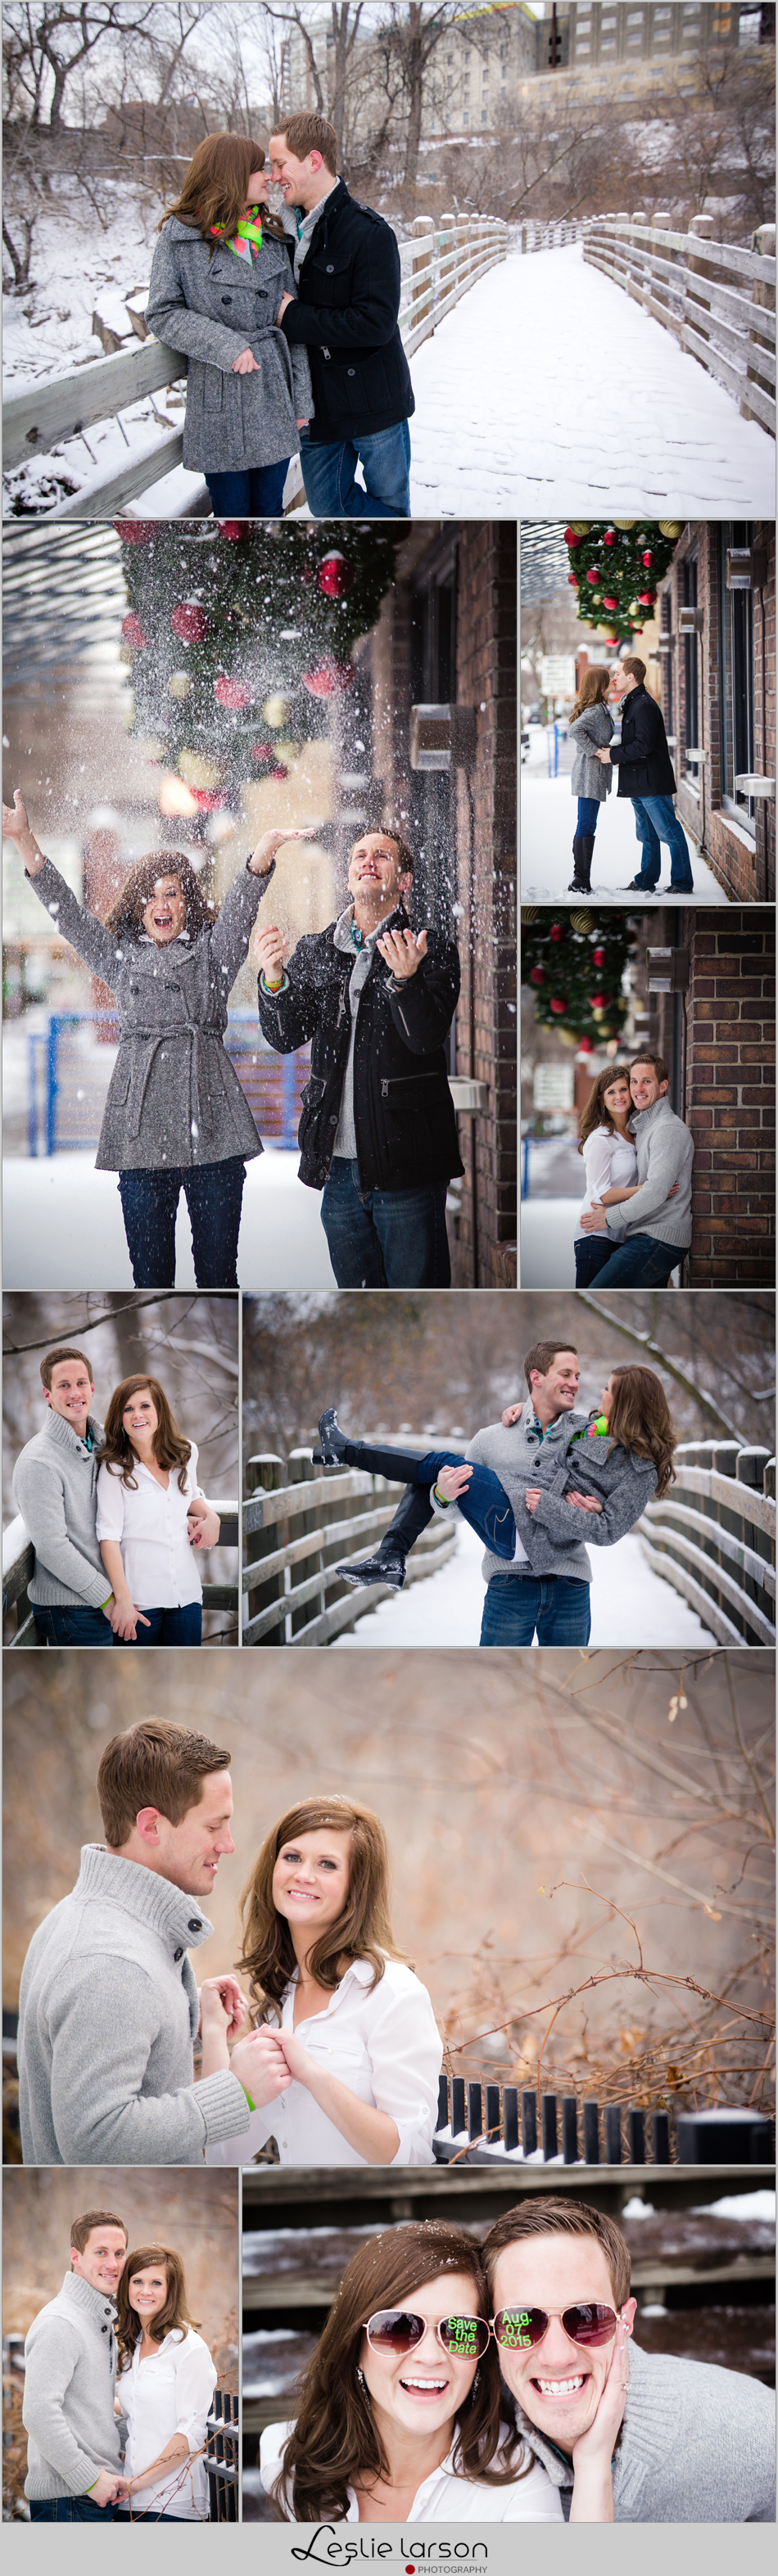 Stone Arch Bridge Winter engagement leslie larson photography